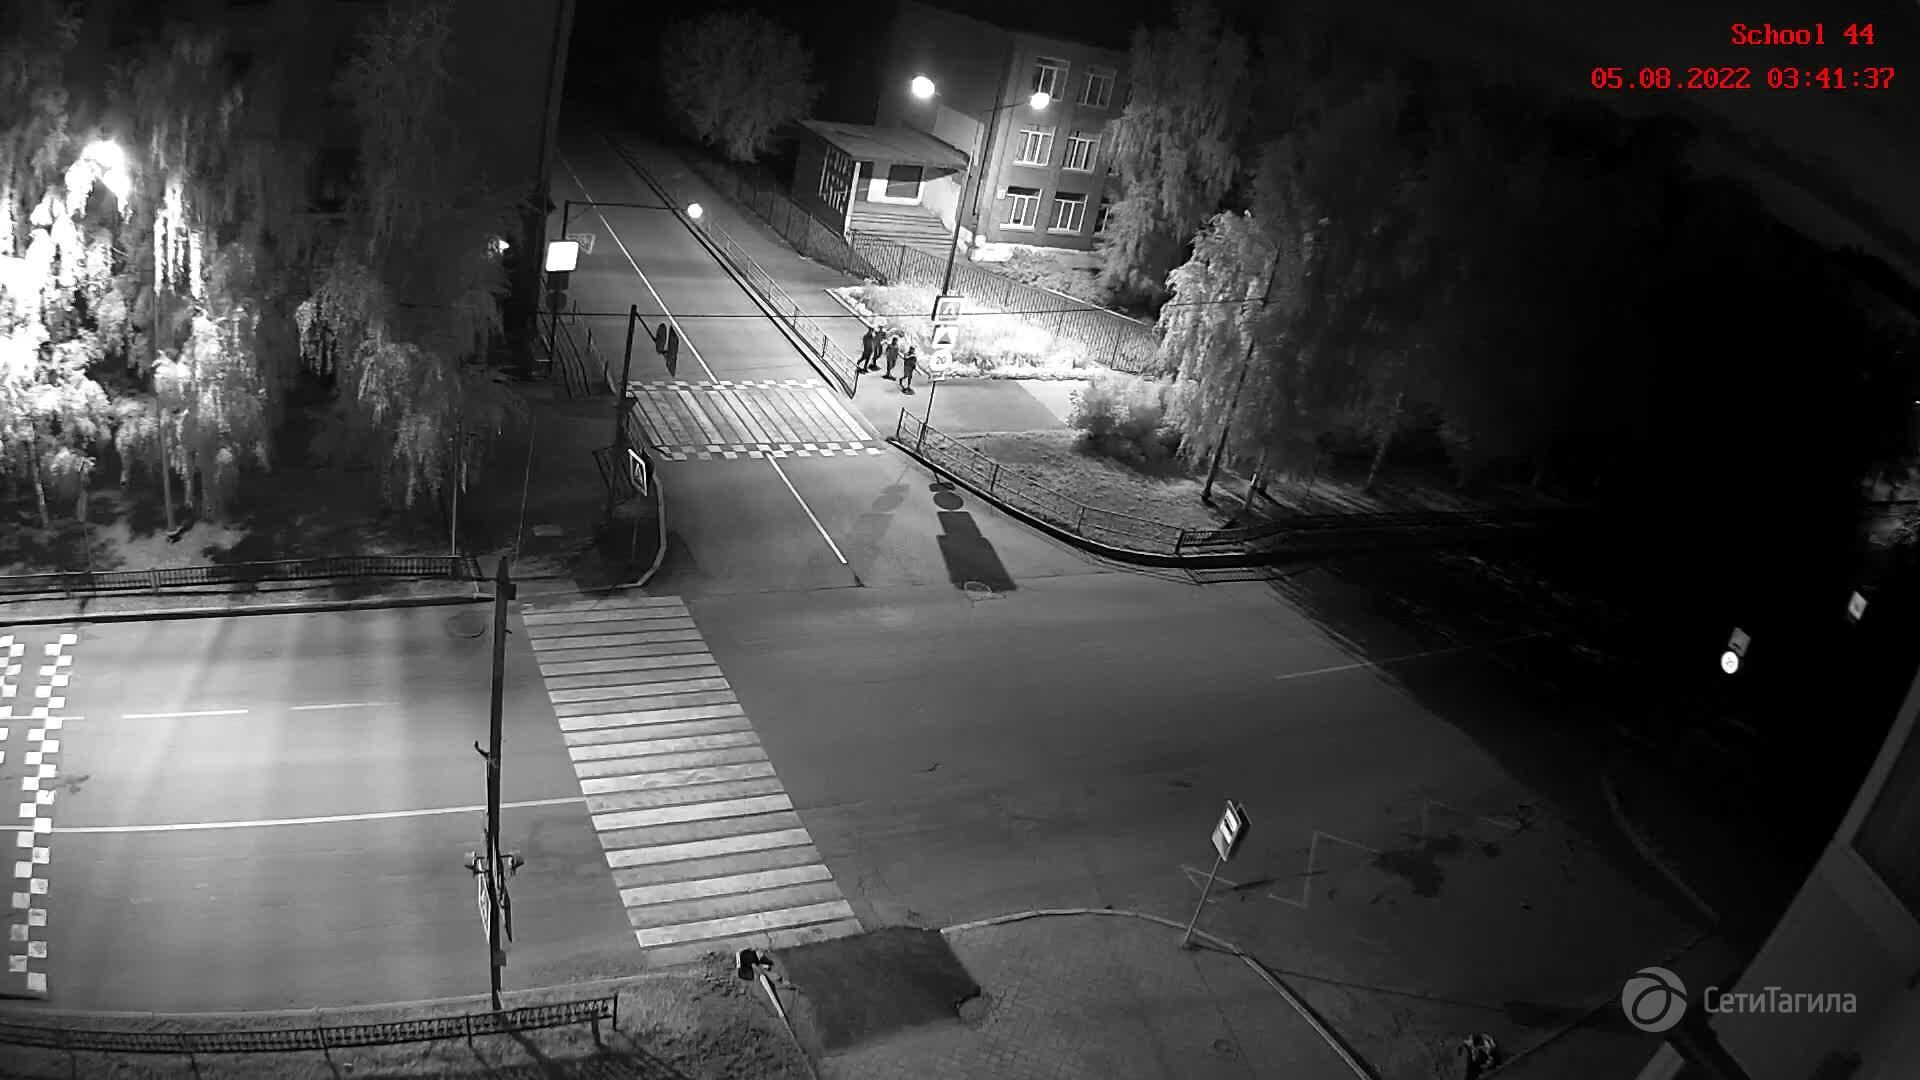 Webcam pedestrian crossing near school N 44 (camera 1), Nizhny Tagil, Sverdlovsk Region, Russia